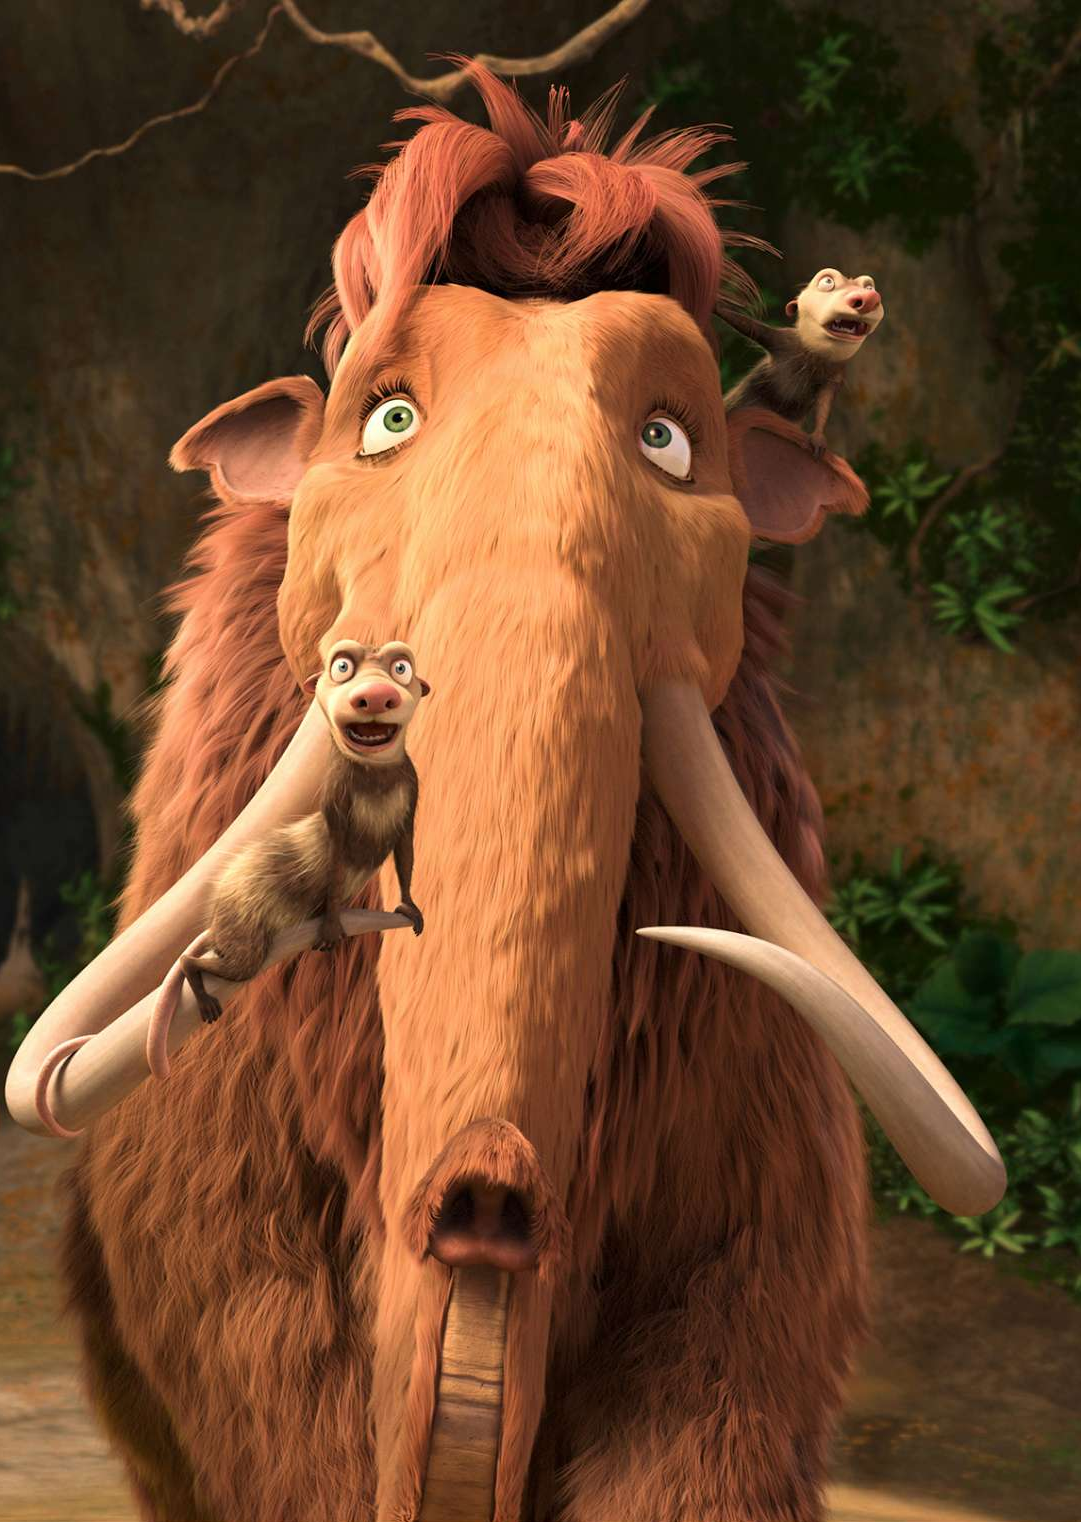 image ellie and brothers png ice age wiki fandom powered by wikia